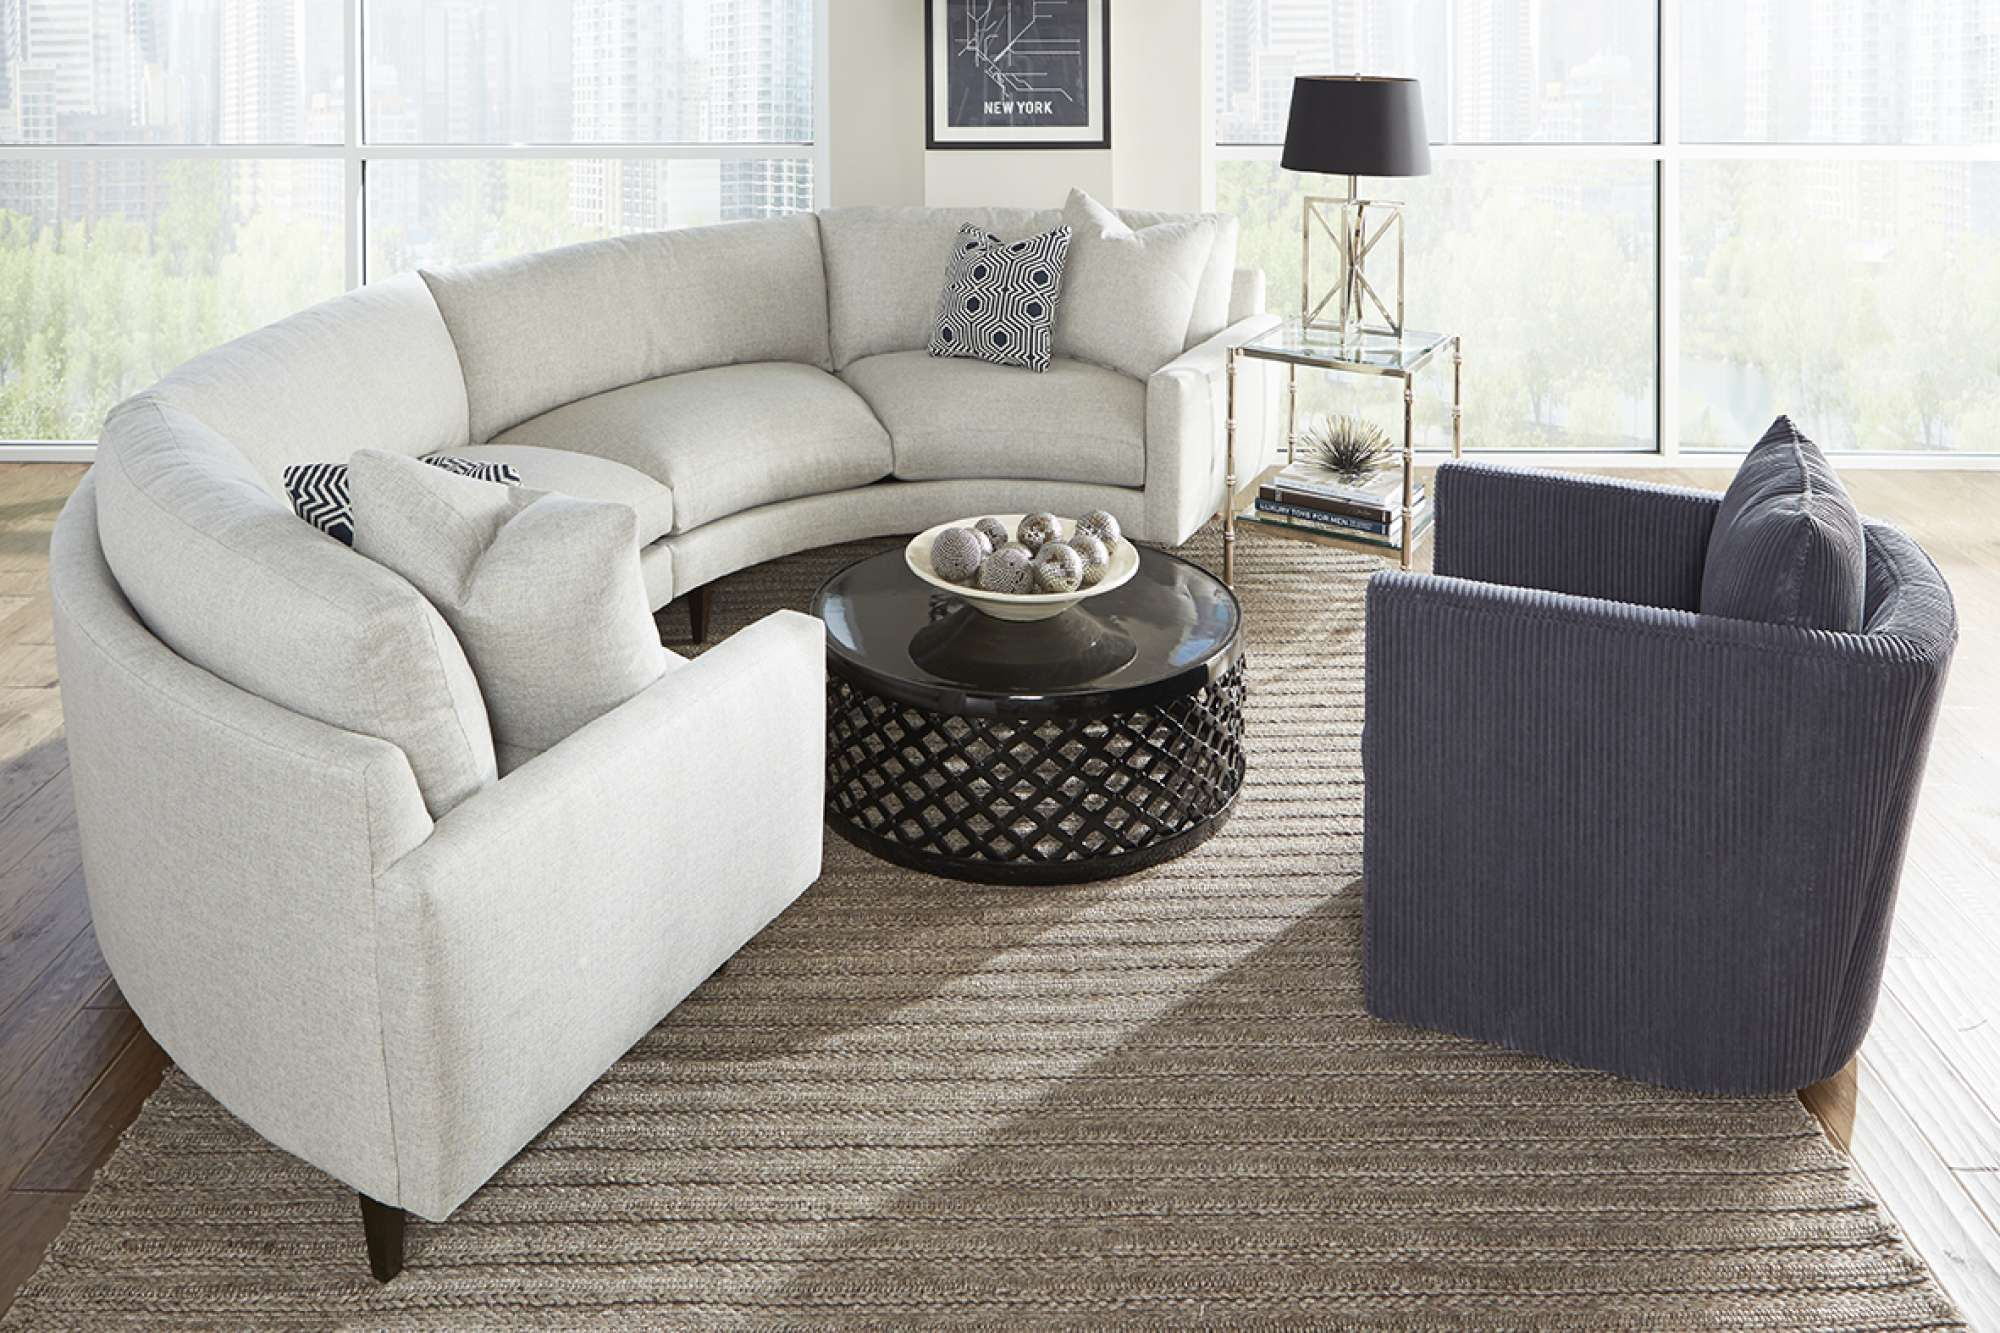 New Curved Oslo Sectional By Rowe Furniture. Unique Comfortable Yet Modern  Design And Can Custom Order In 500 Fabrics!